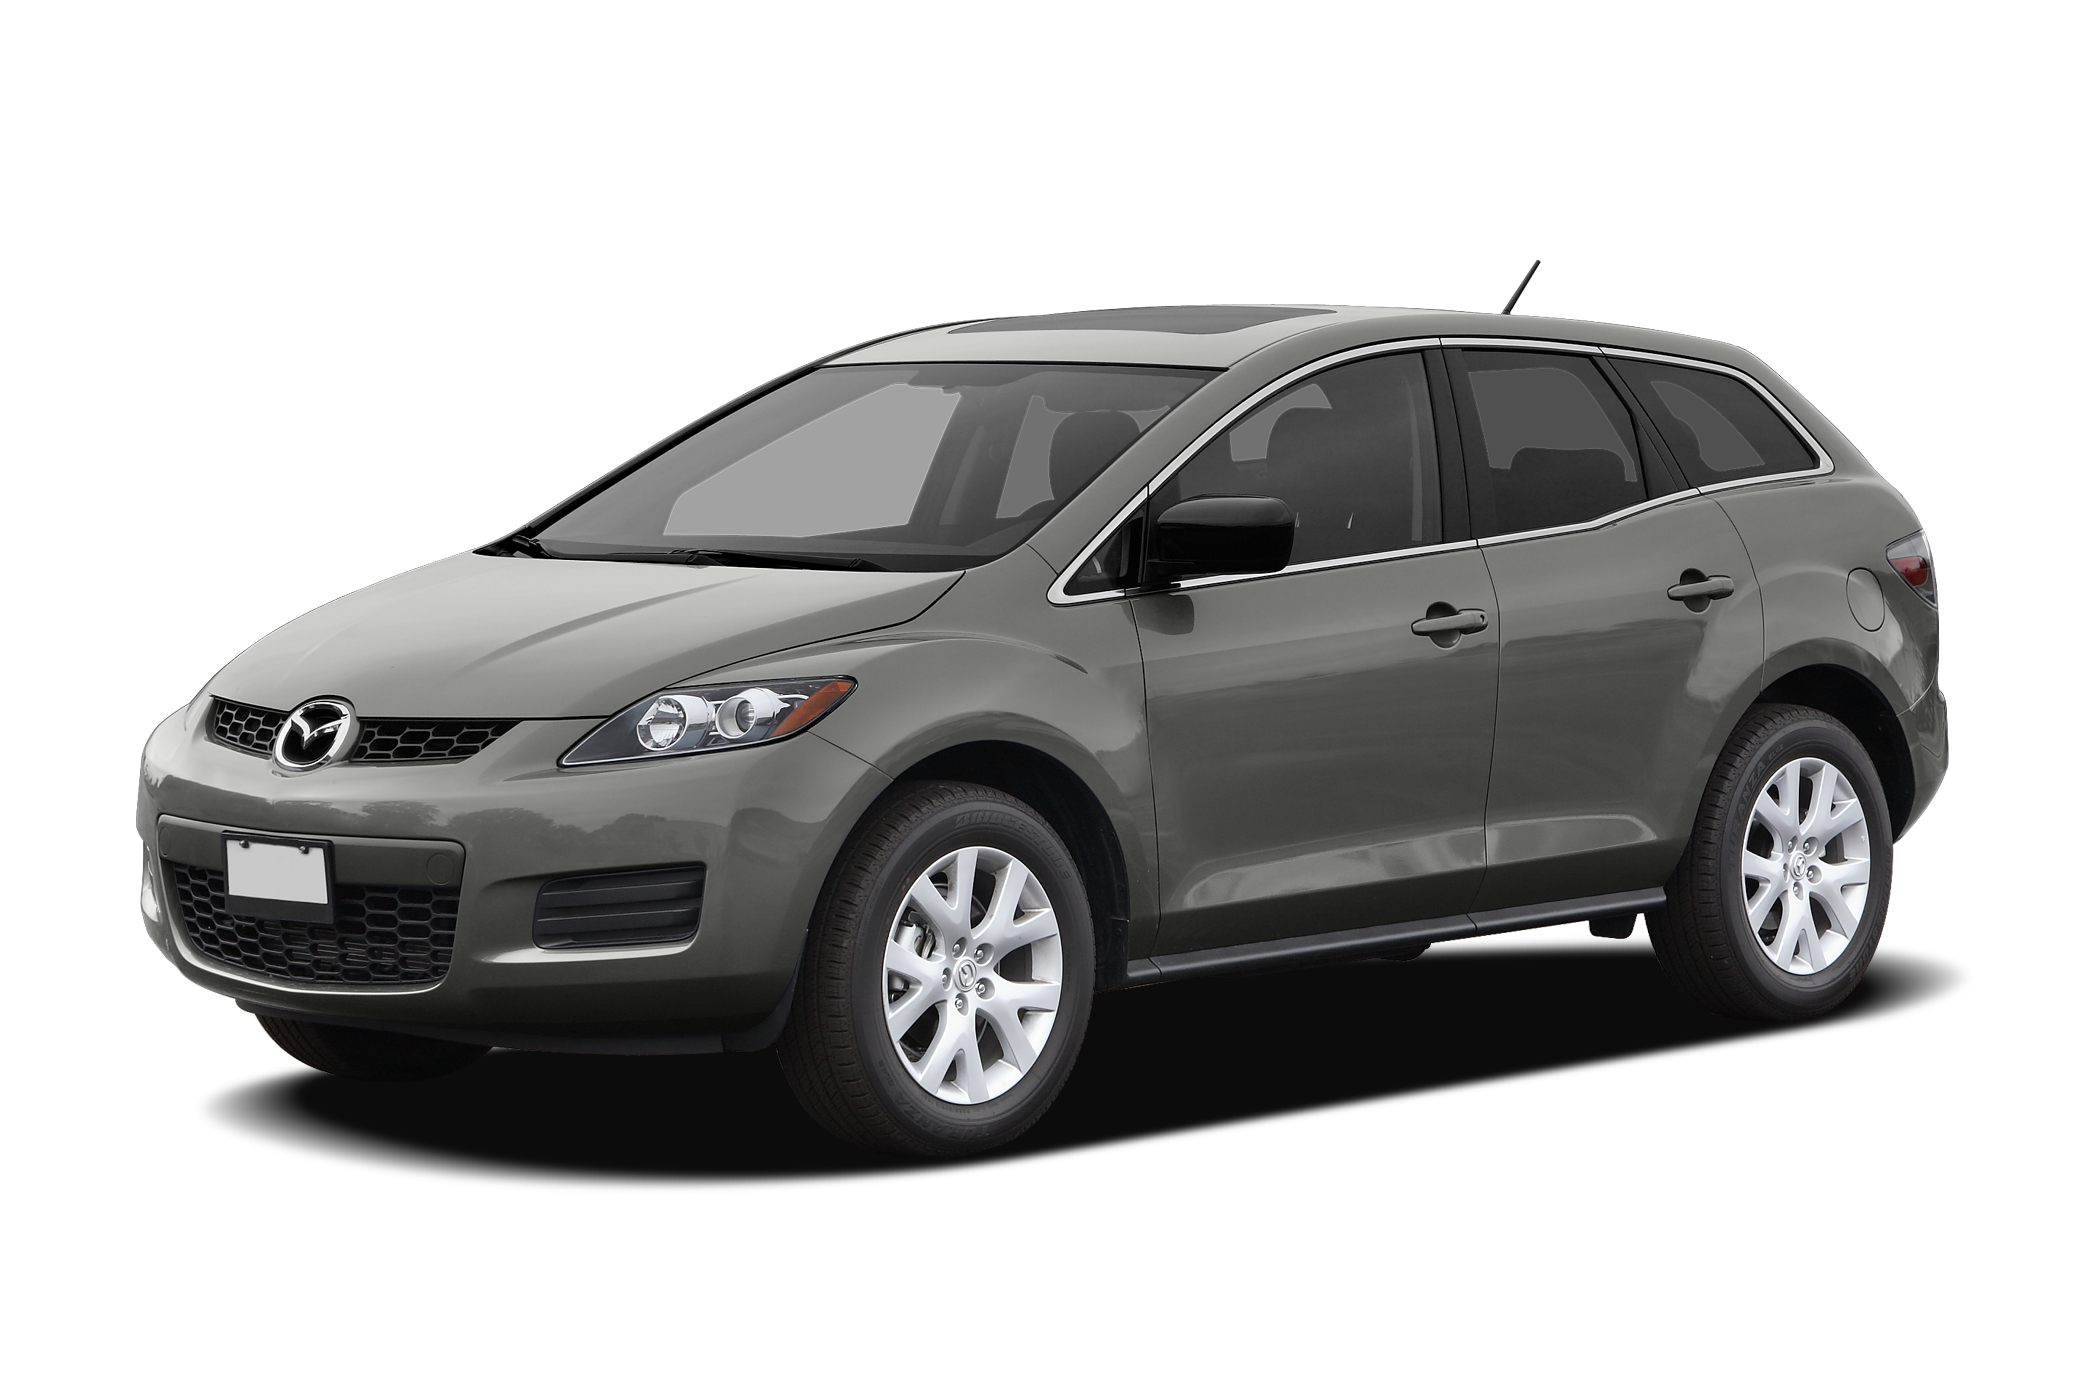 2007 Mazda CX-7 Grand Touring SUV for sale in Pittsburgh for $10,450 with 72,932 miles.